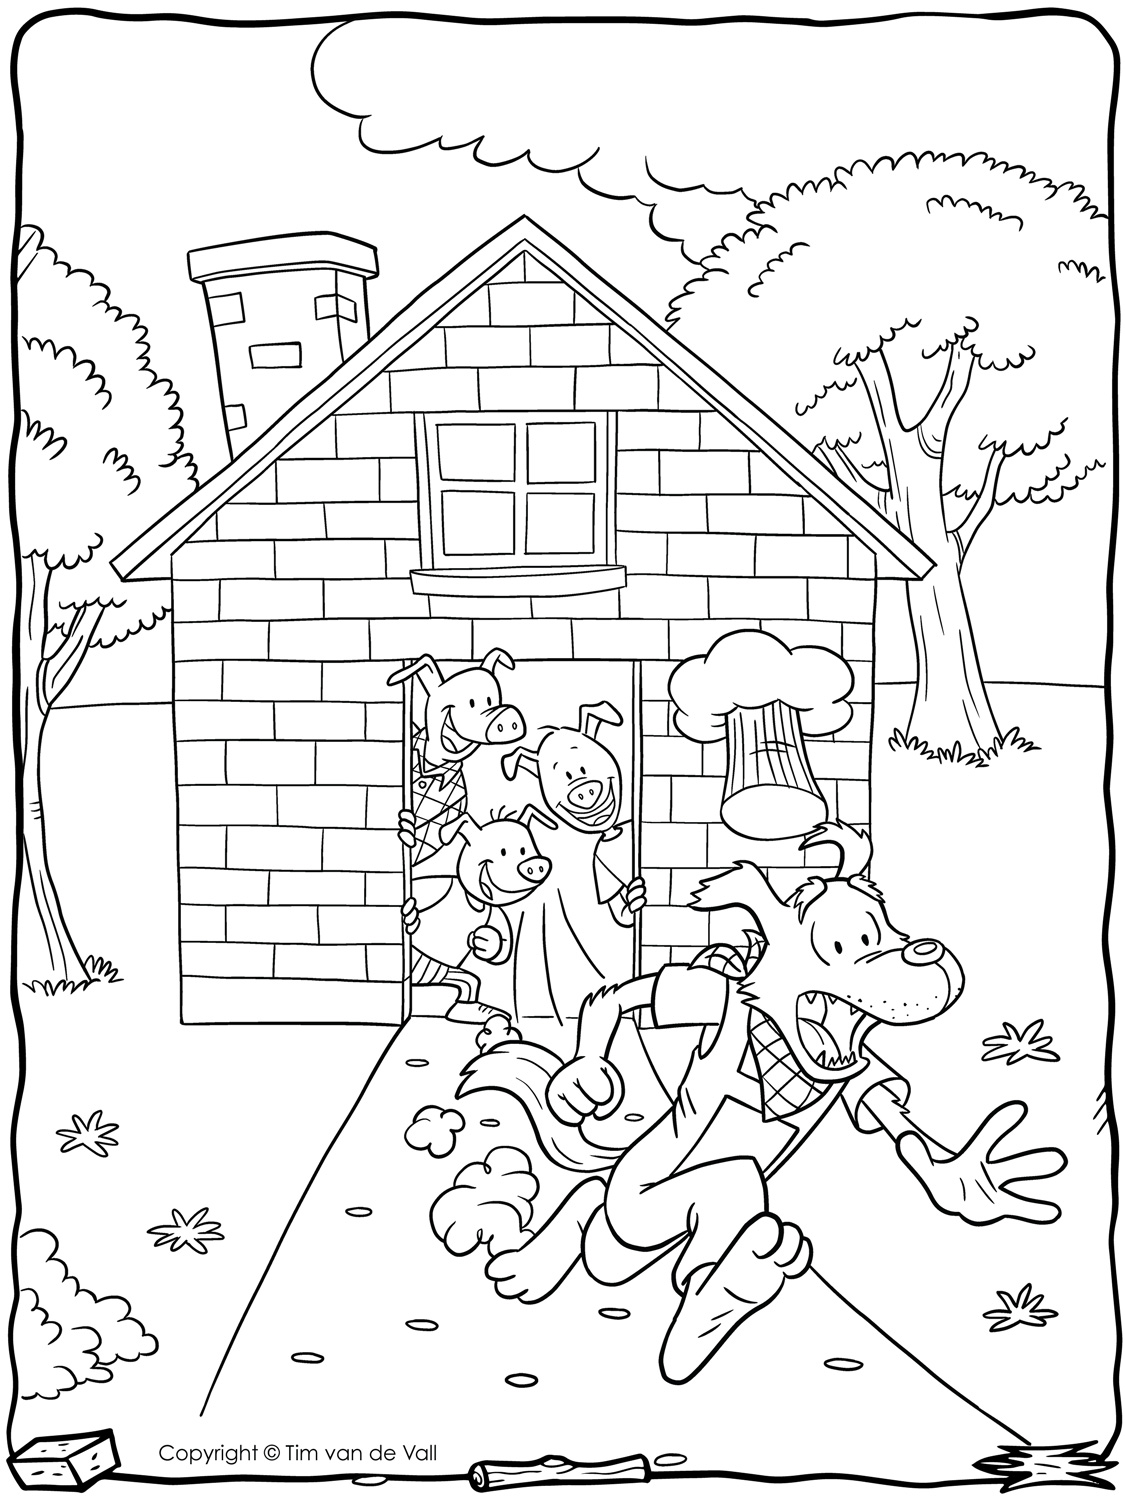 3 little pigs coloring page three little pigs coloring pages coloring pages to 3 pigs little page coloring